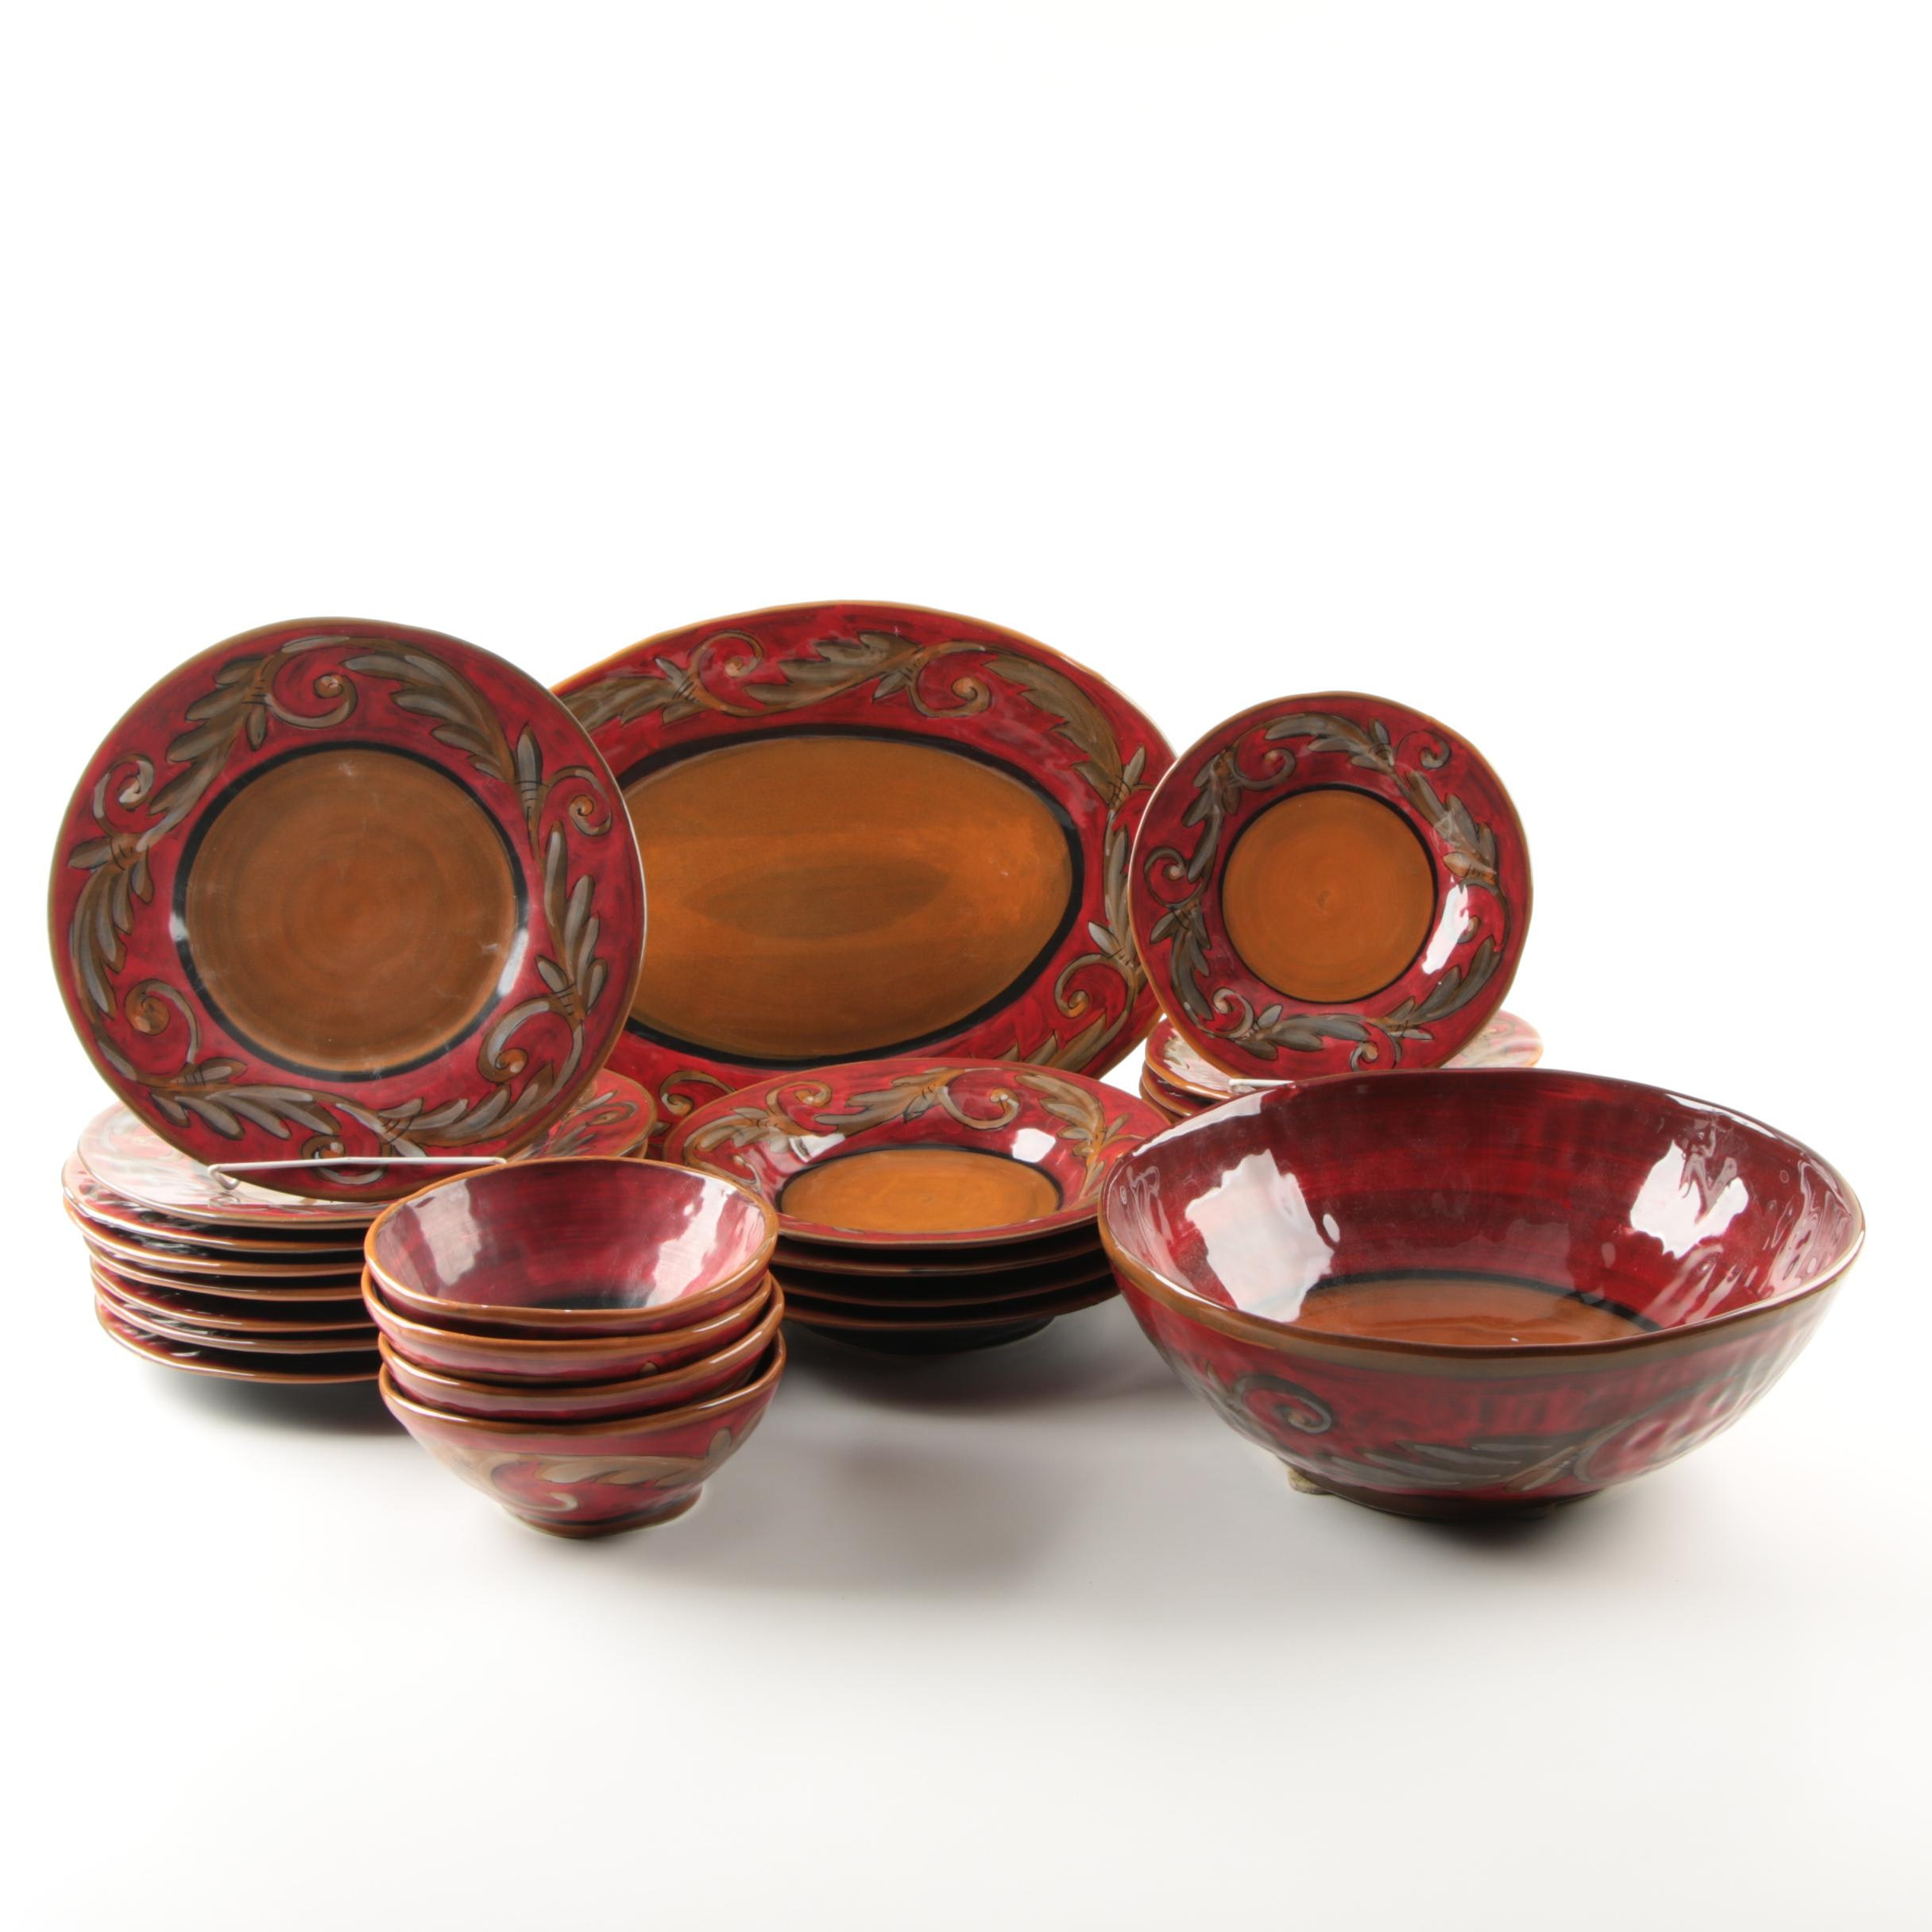 Italian Dinnerware by Rale in Red with Leaf Band